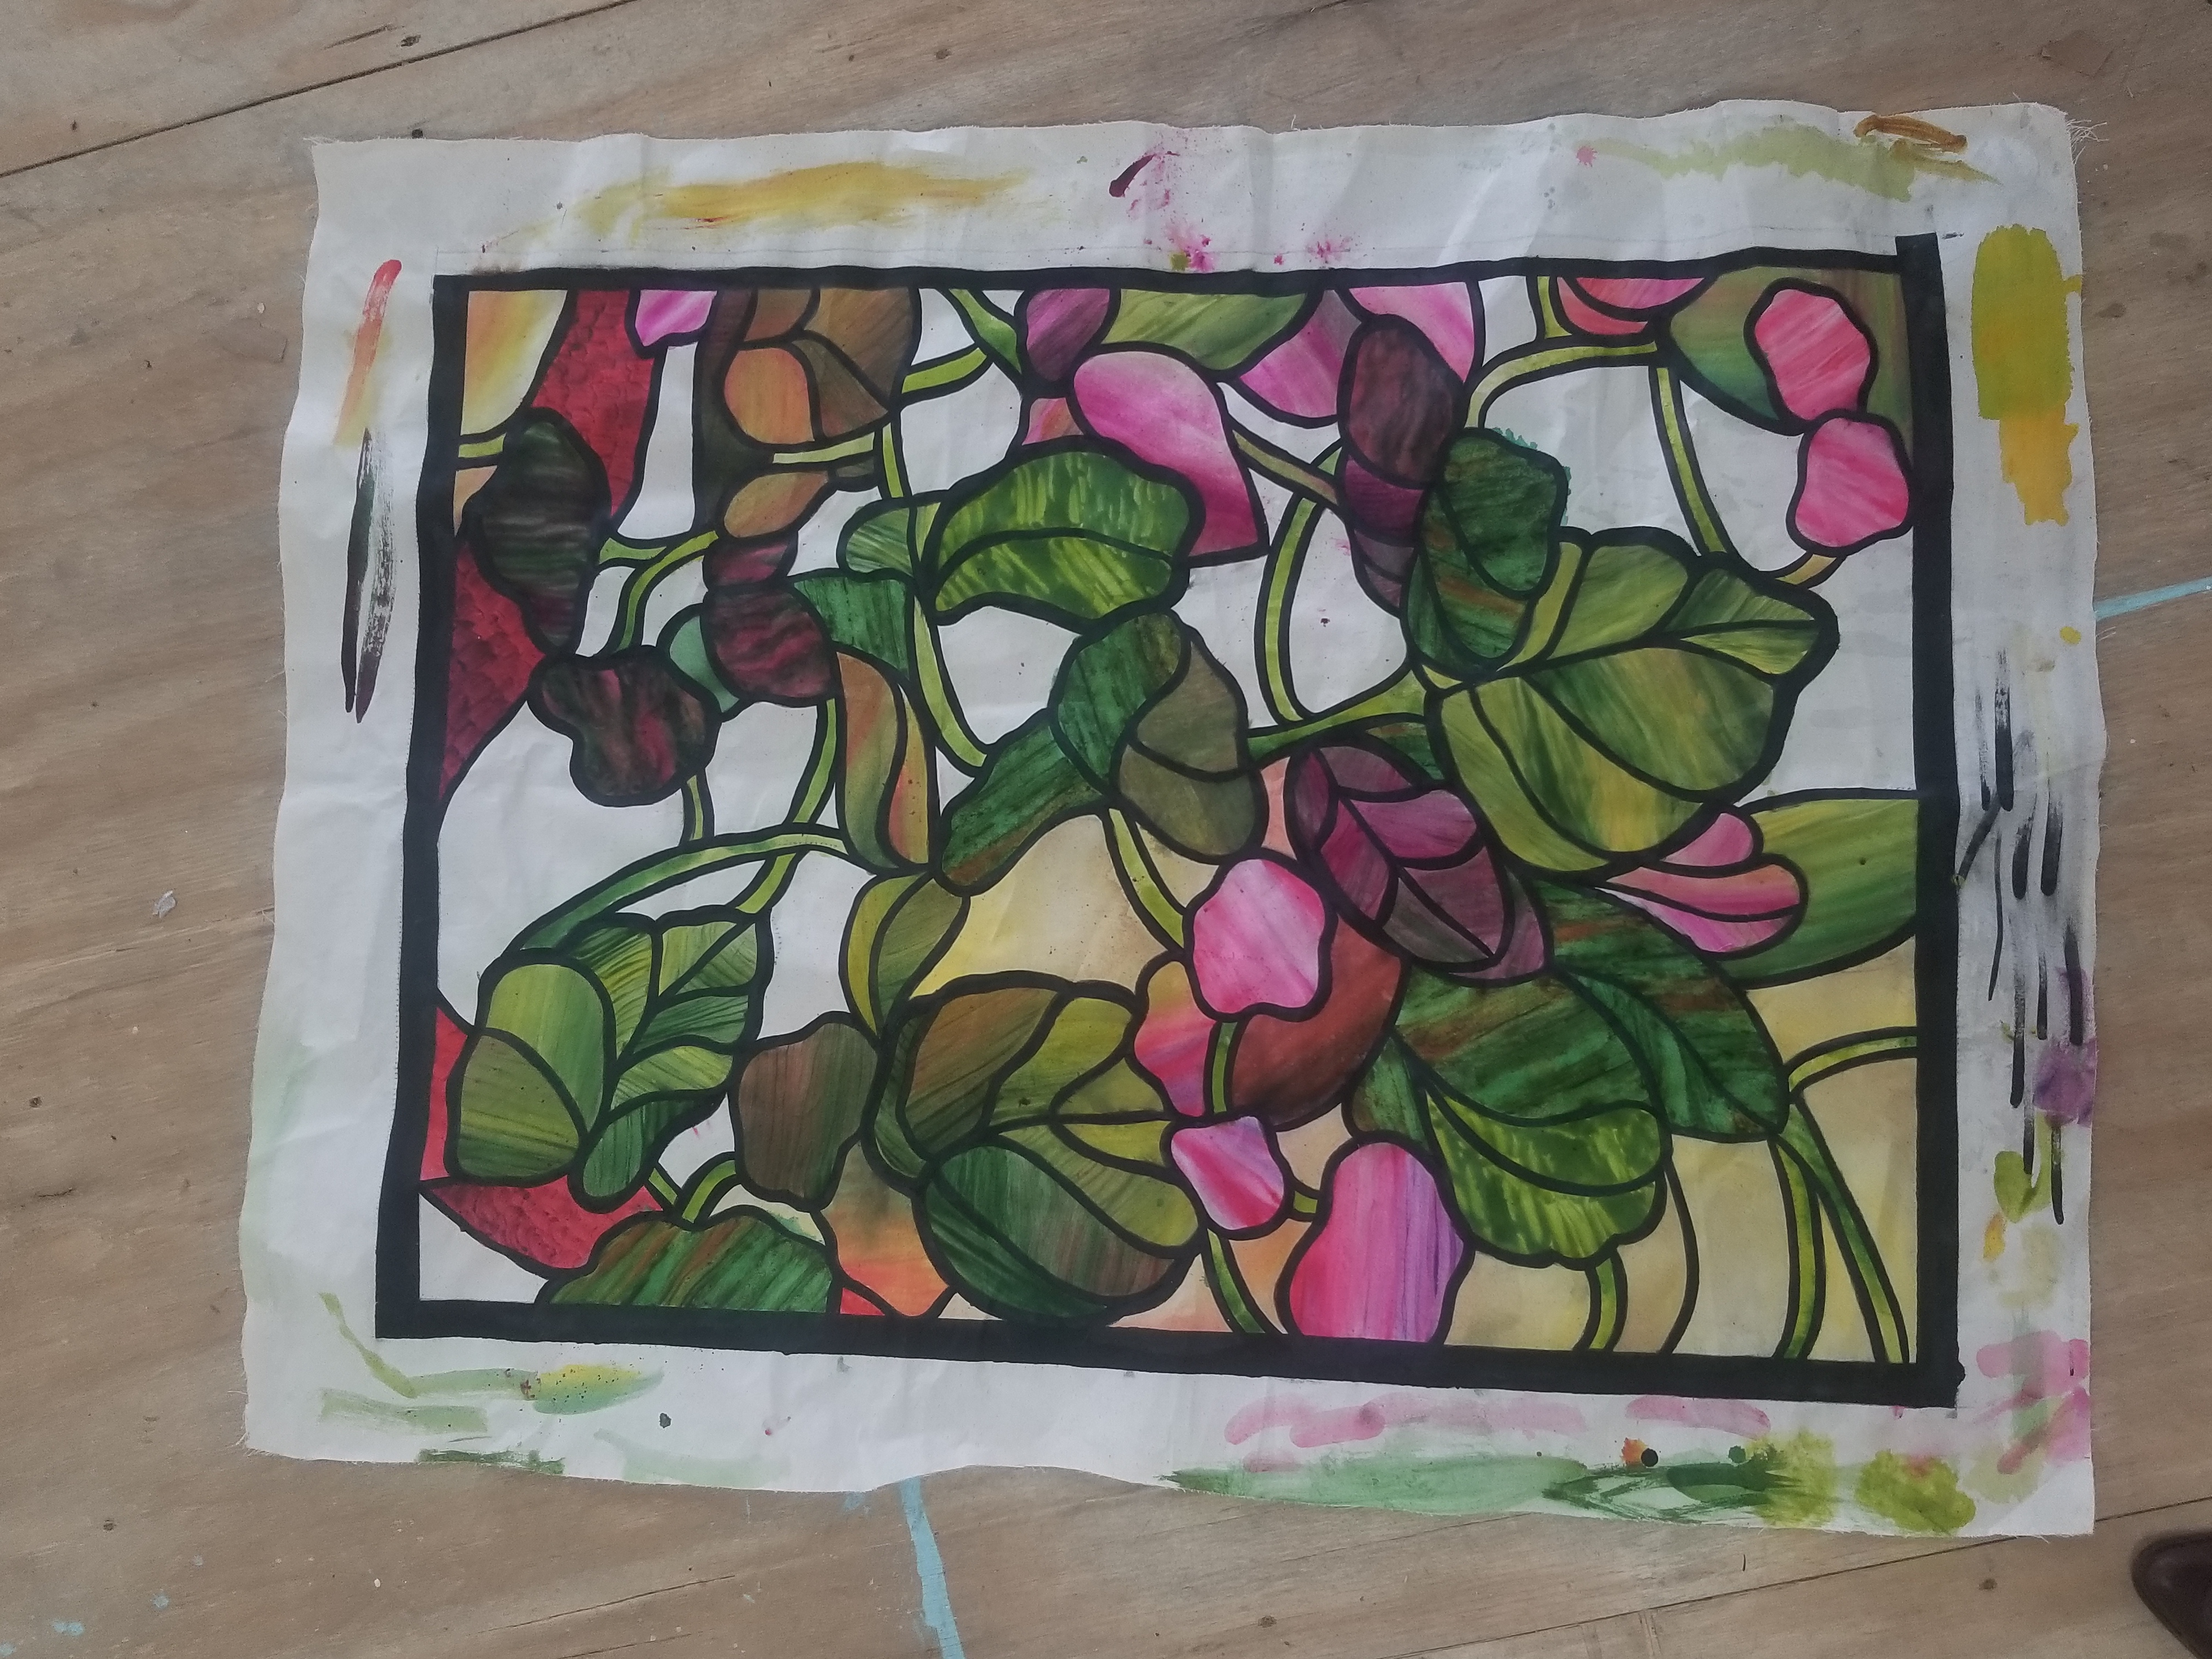 A piece of muslin fabric painted to resemble stained glass